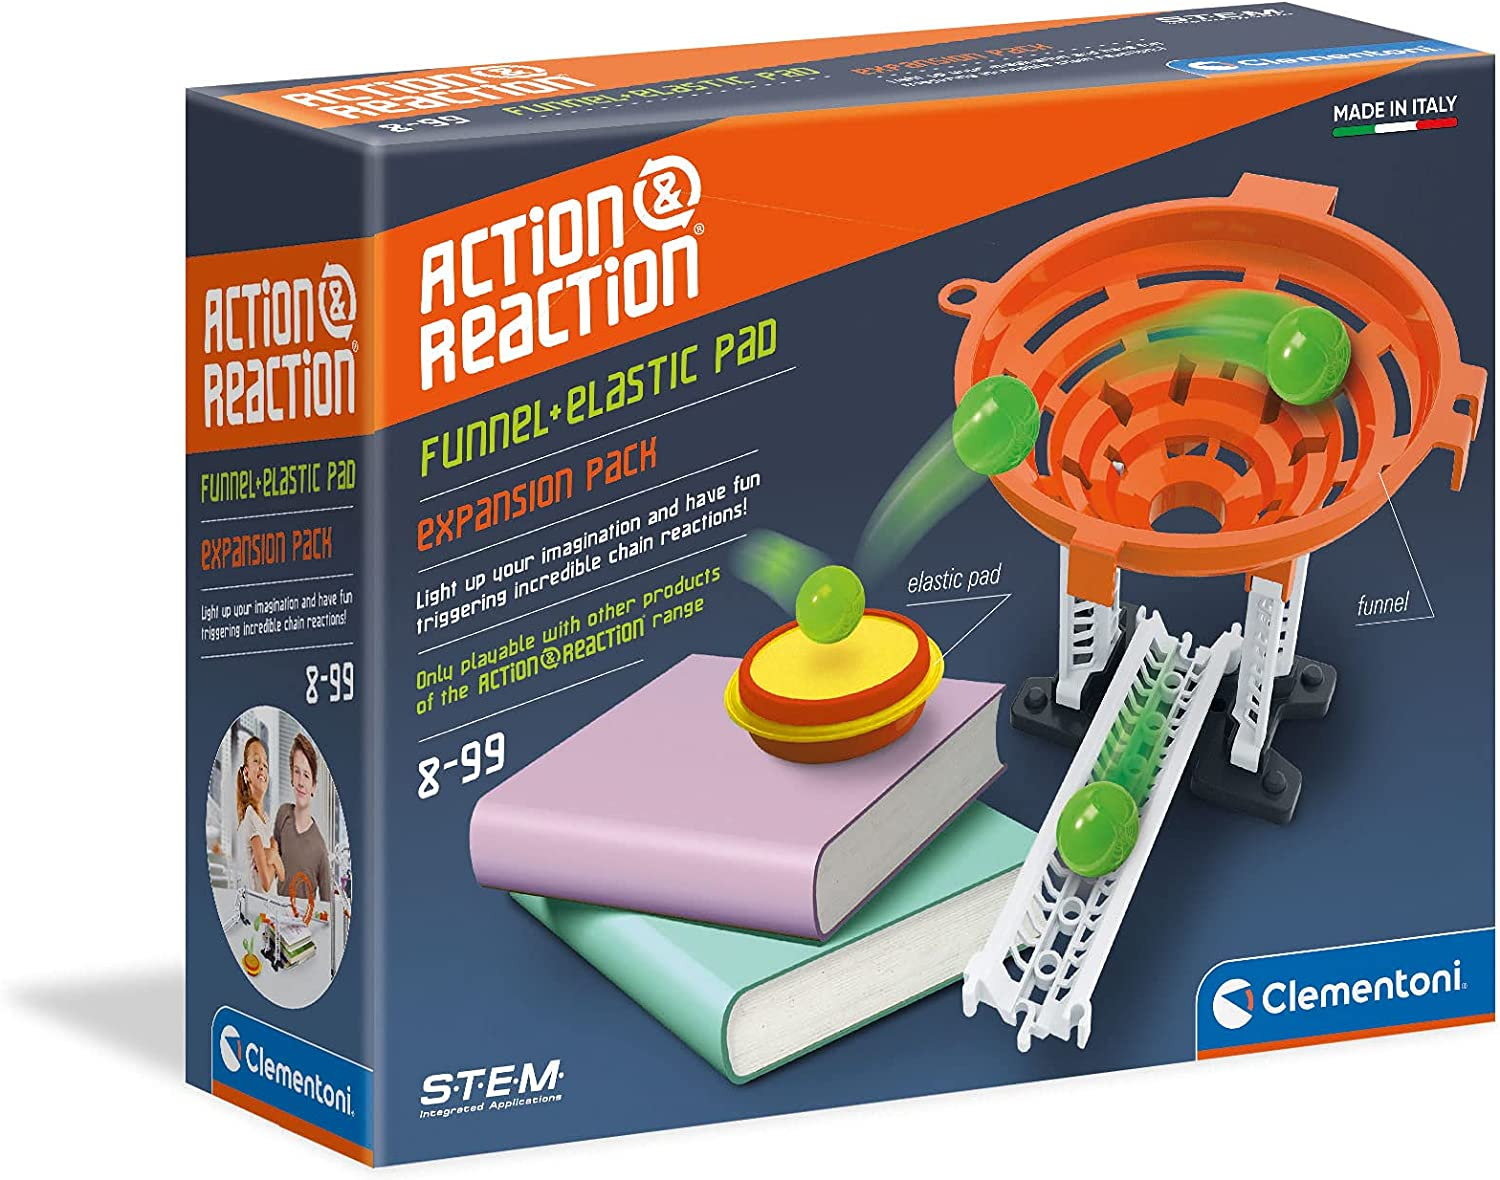 Clementoni Action Reaction Trampoline with Vortex Max 50% OFF Oakland Mall Accessory